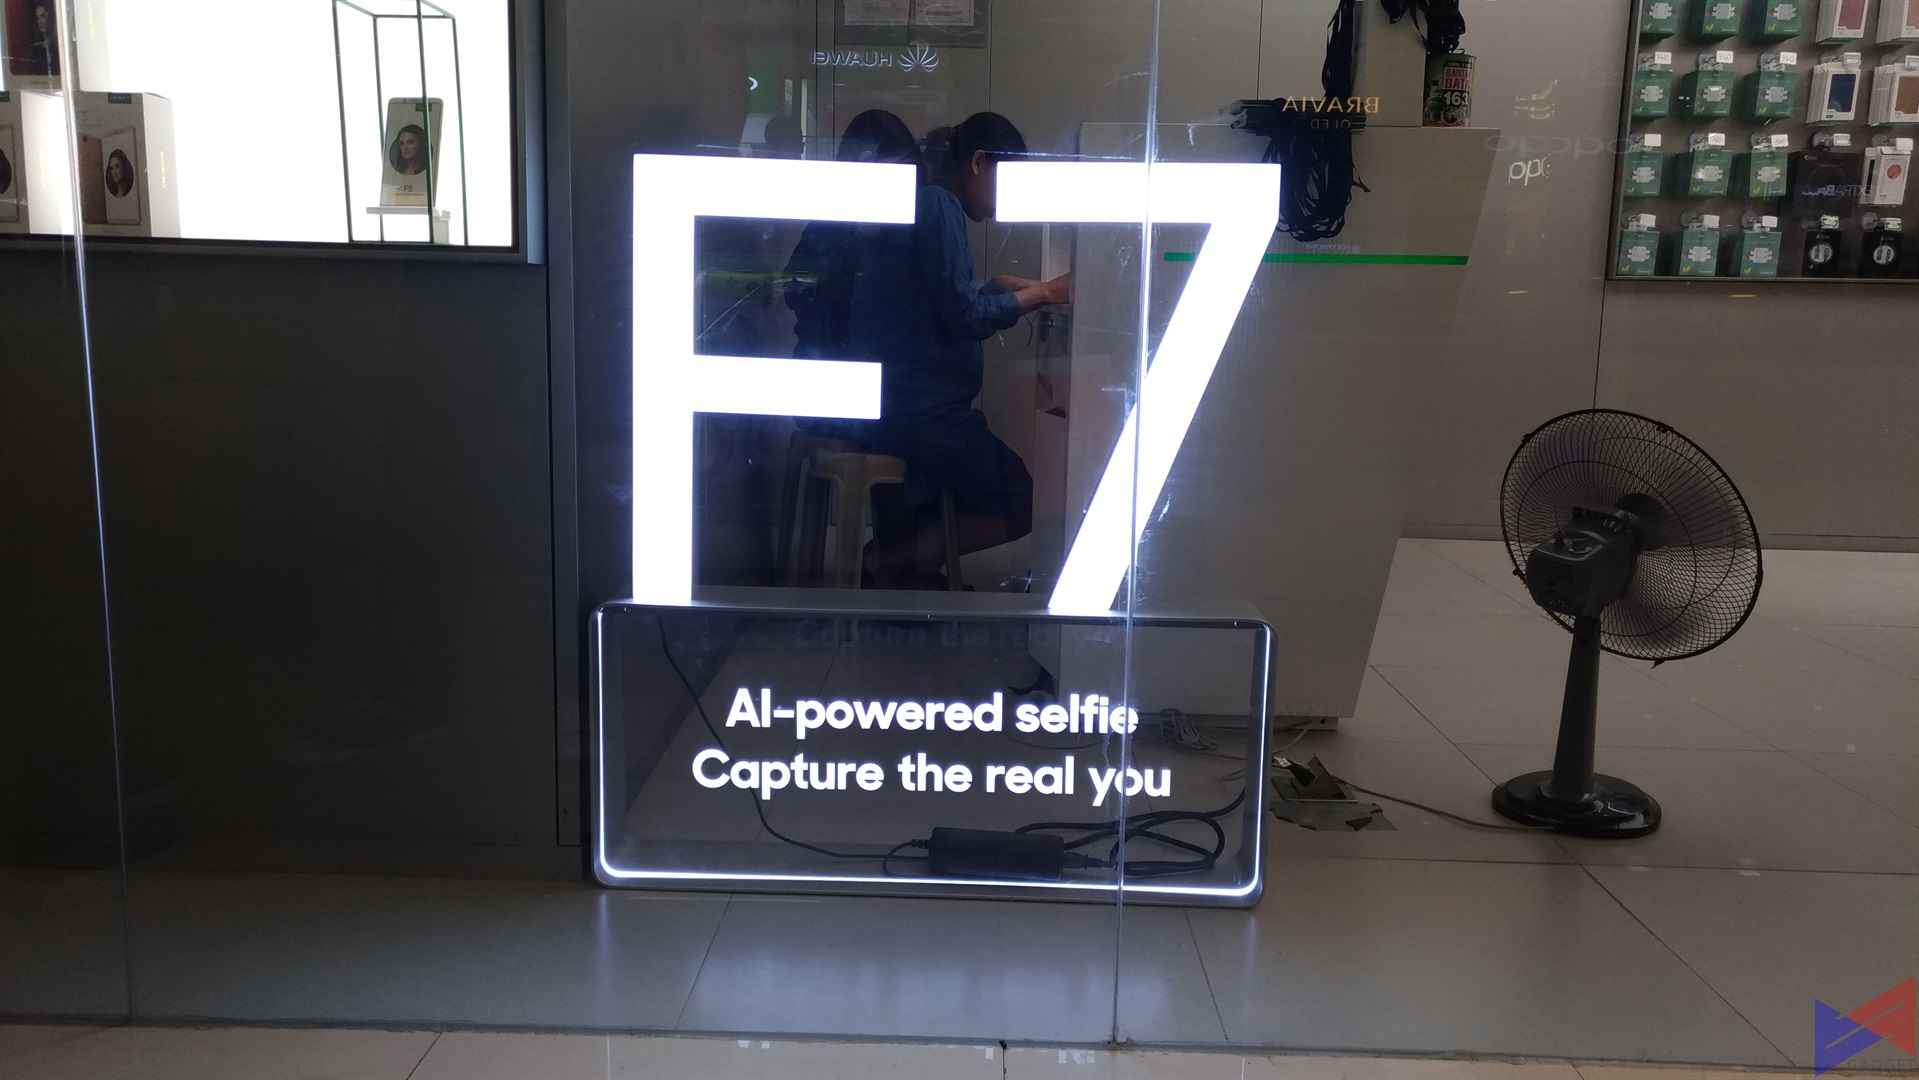 oppo f7 specs1 1 - OPPO F7 Specs Leak Ahead of Launch: Reveals Helio P60 and 25MP Front Camera